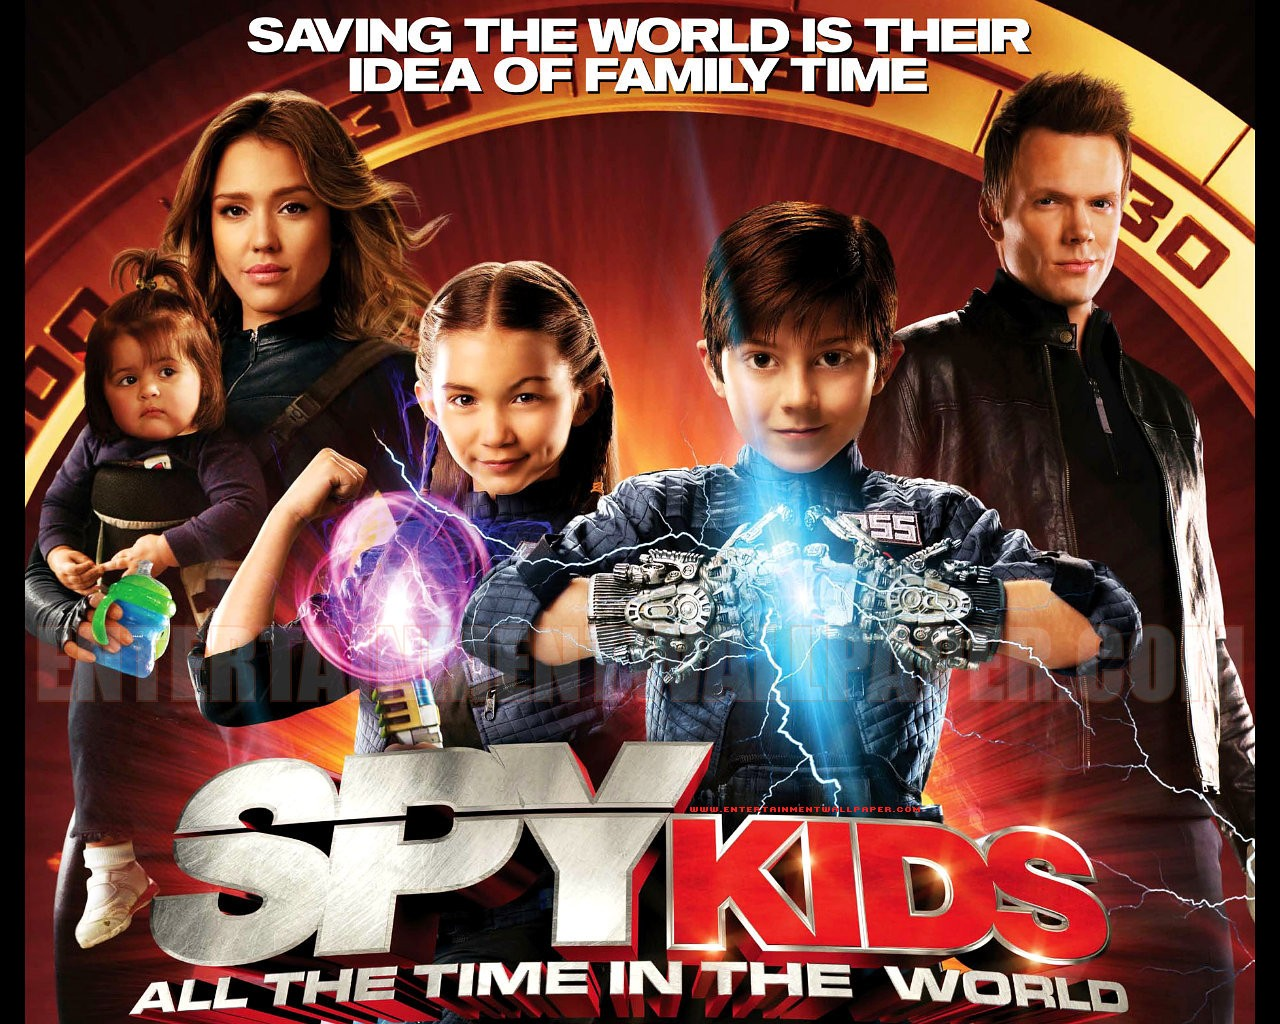 http://2.bp.blogspot.com/-NFNTa3nEHtg/TkooN2UnKgI/AAAAAAAAAMo/-cj3hOb2tNk/s1600/spy-kids-4-all-the-time-in-the-world02.jpg